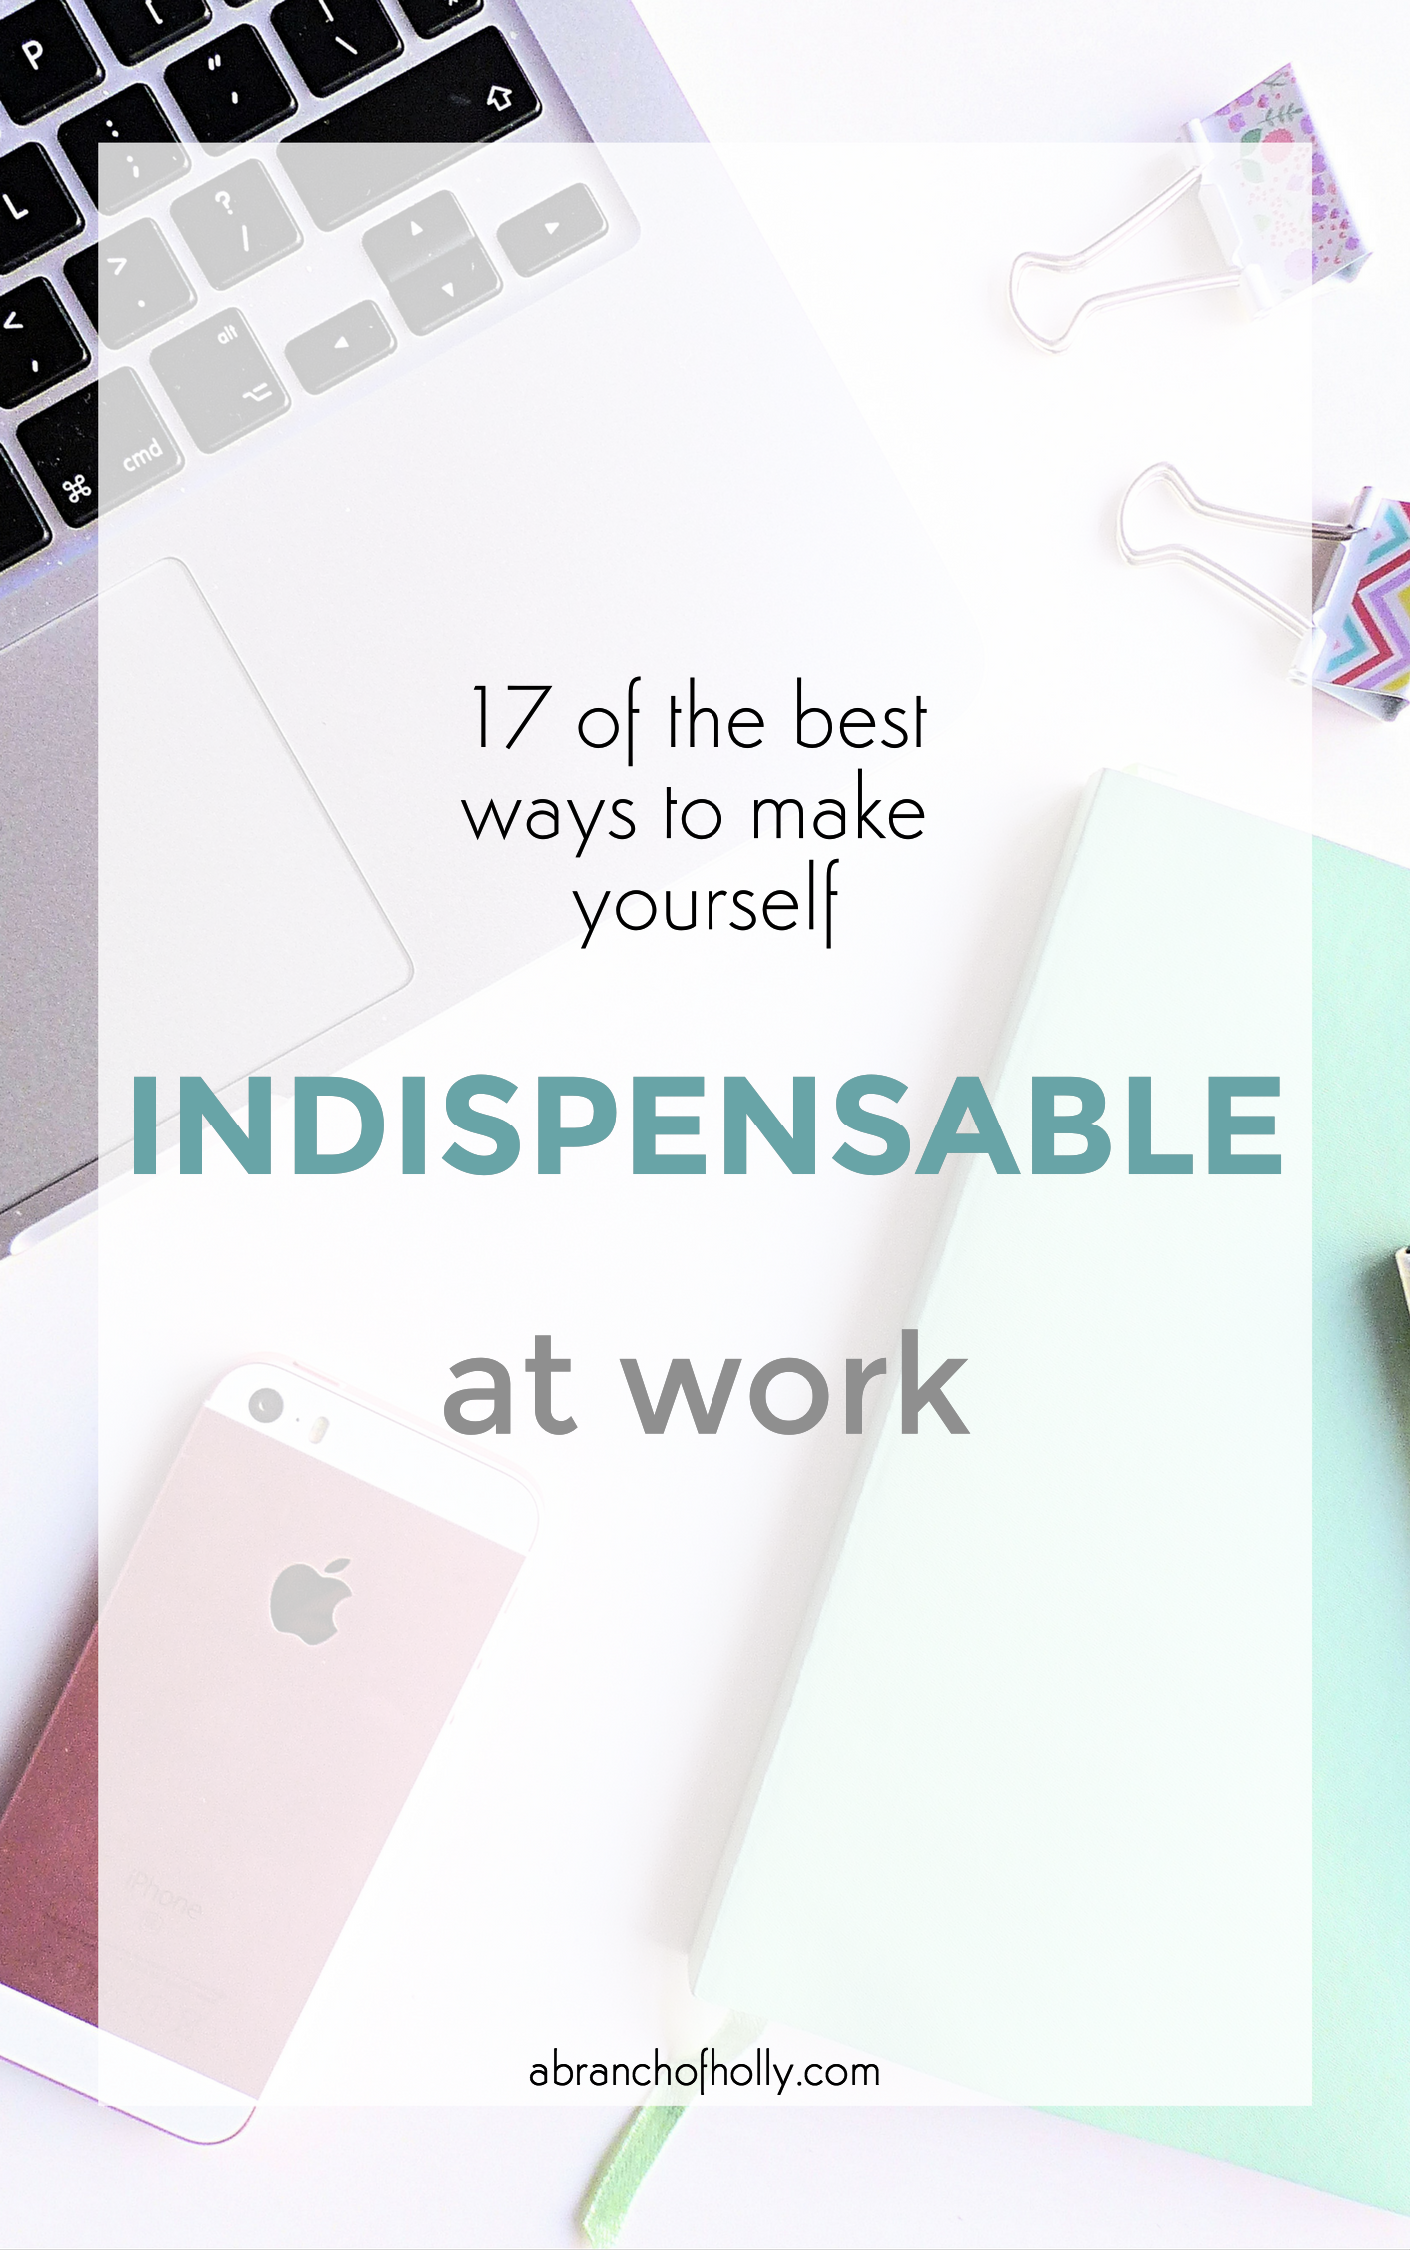 ways to make yourself indispensable at work